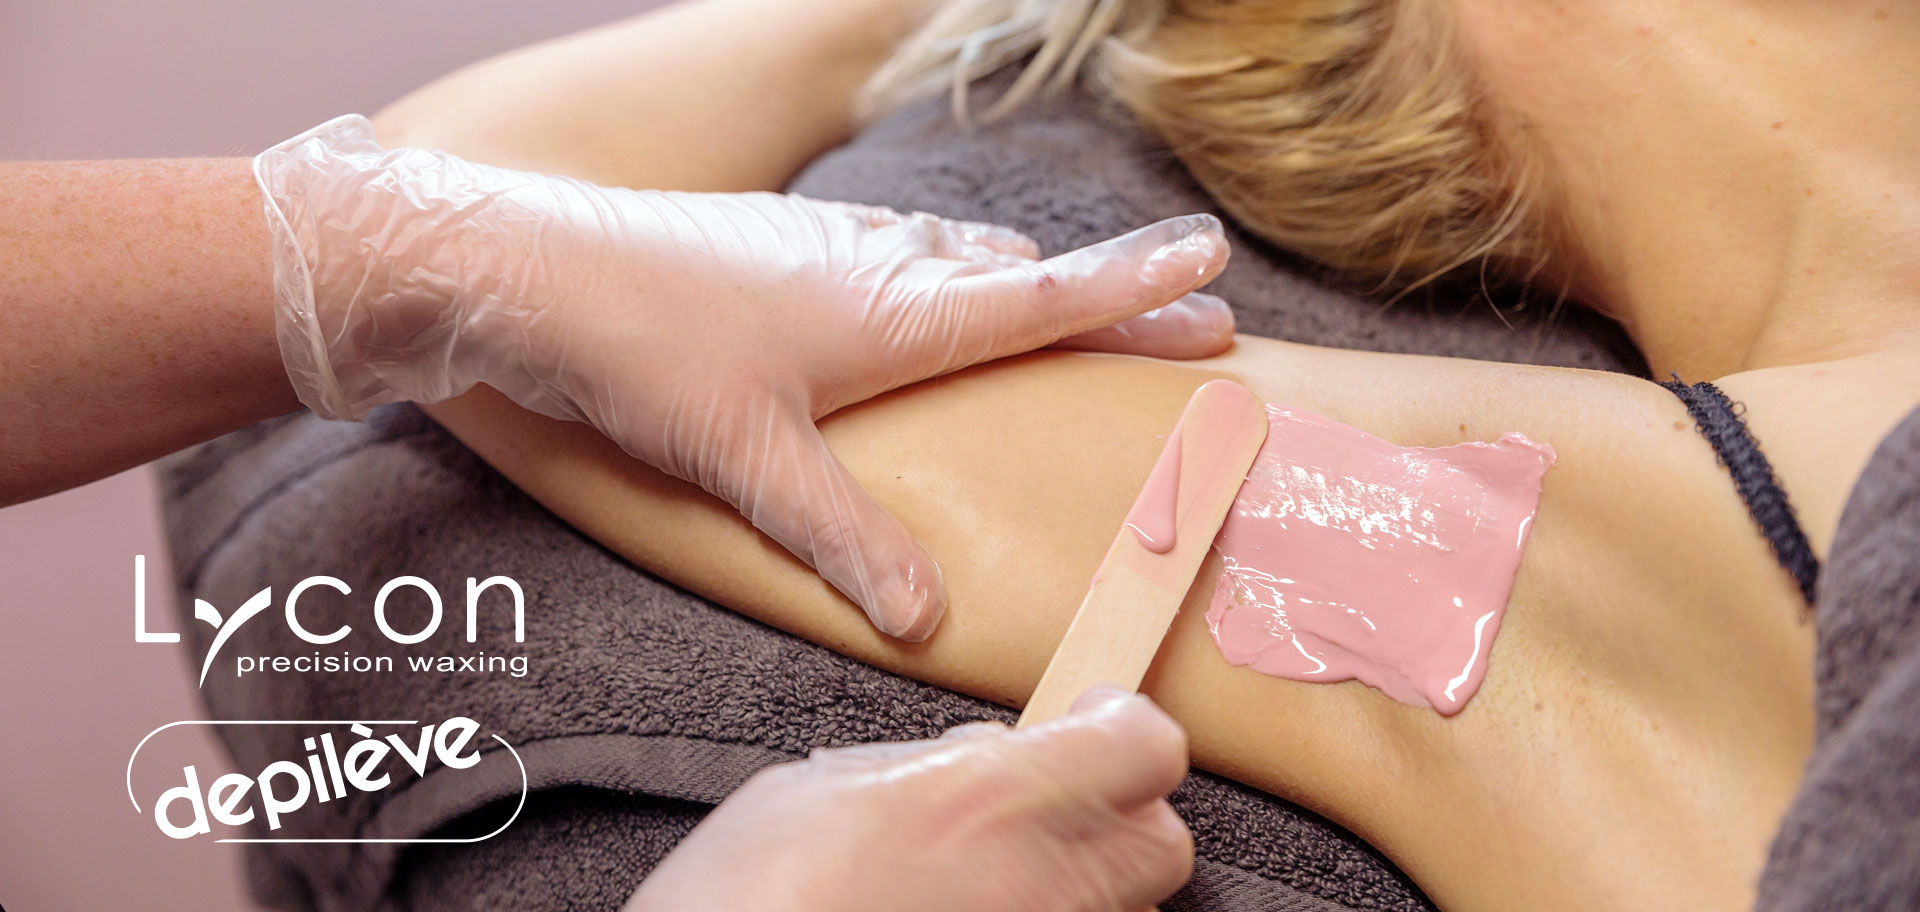 Waxing Hair Removal using Lycon & Depilève Waxing Systems